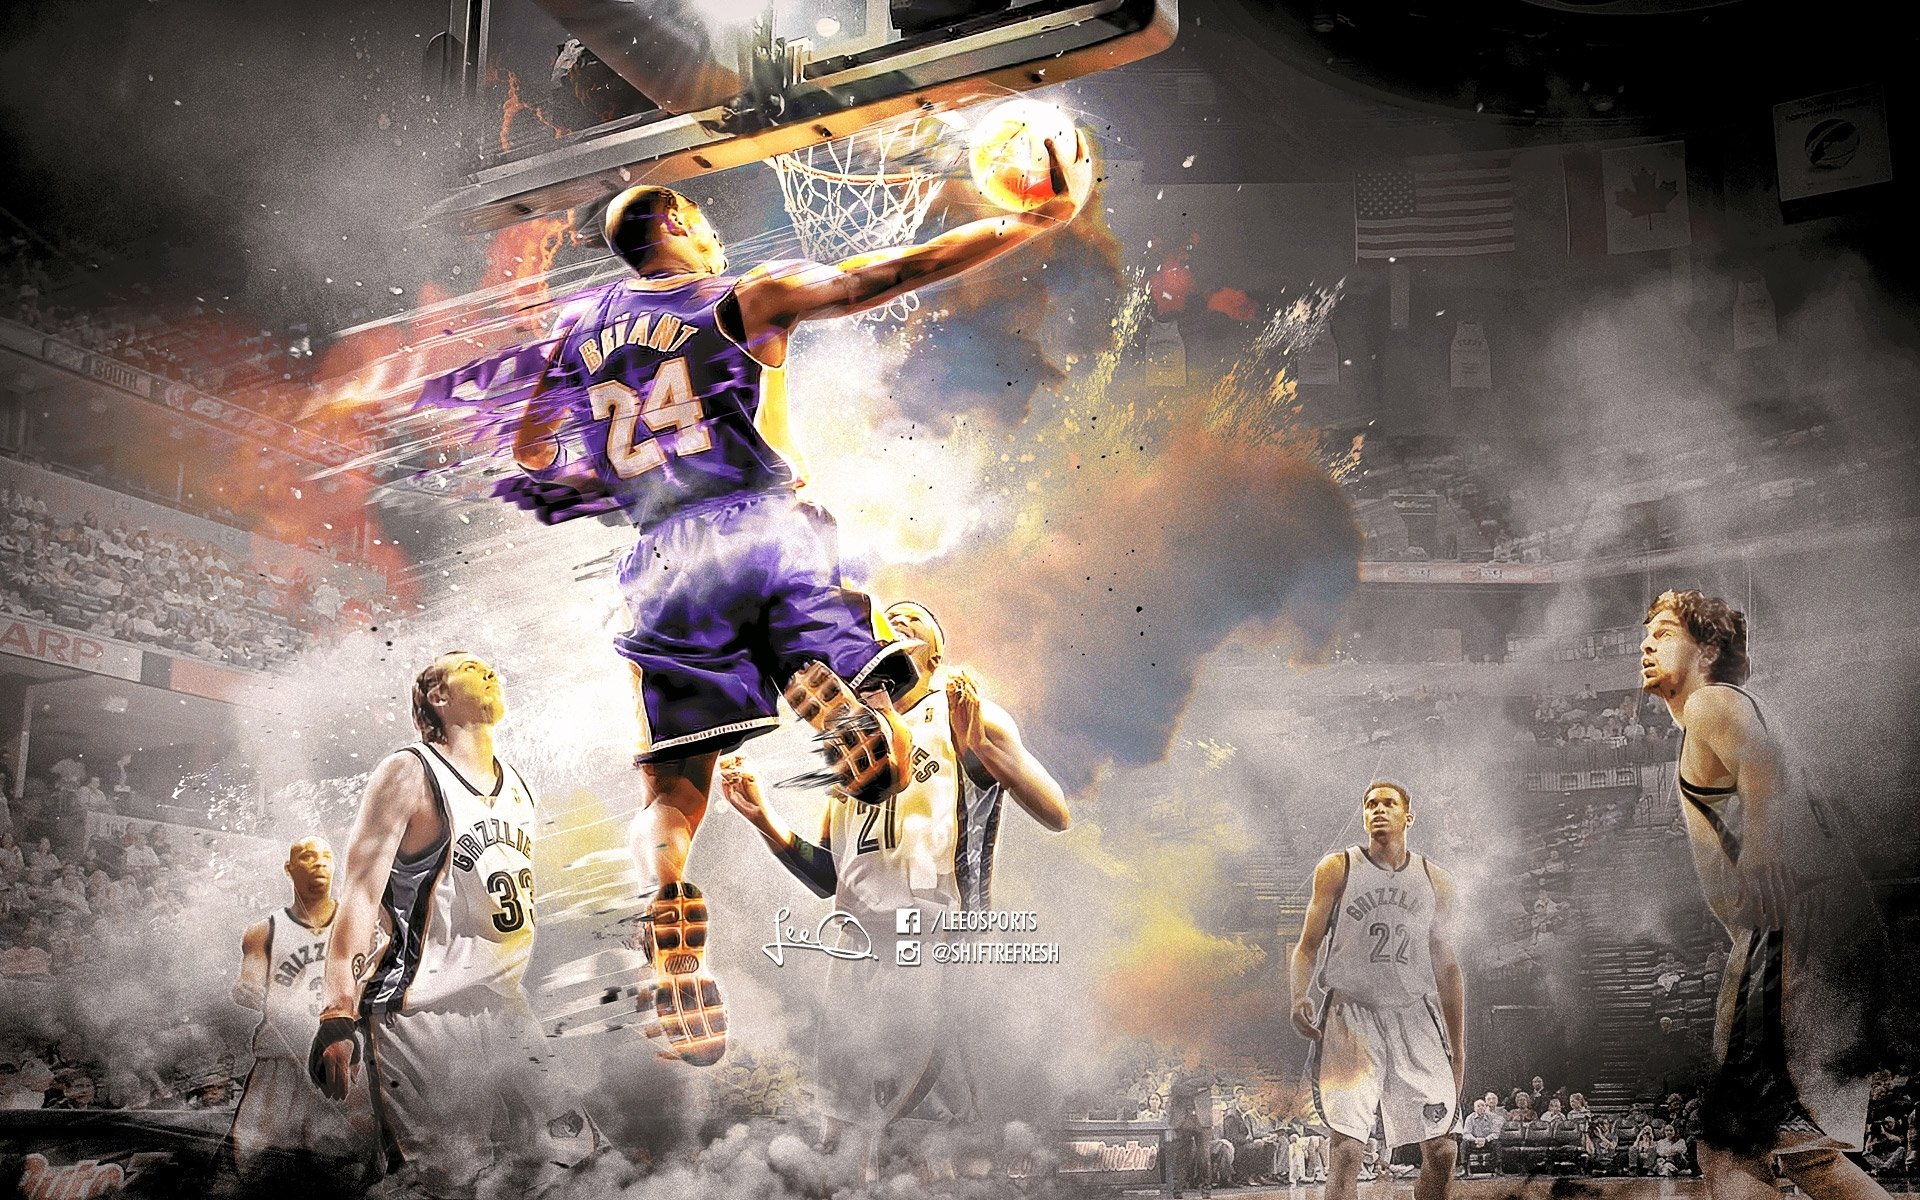 kobe bryant wallpapers | basketball wallpapers at basketwallpapers